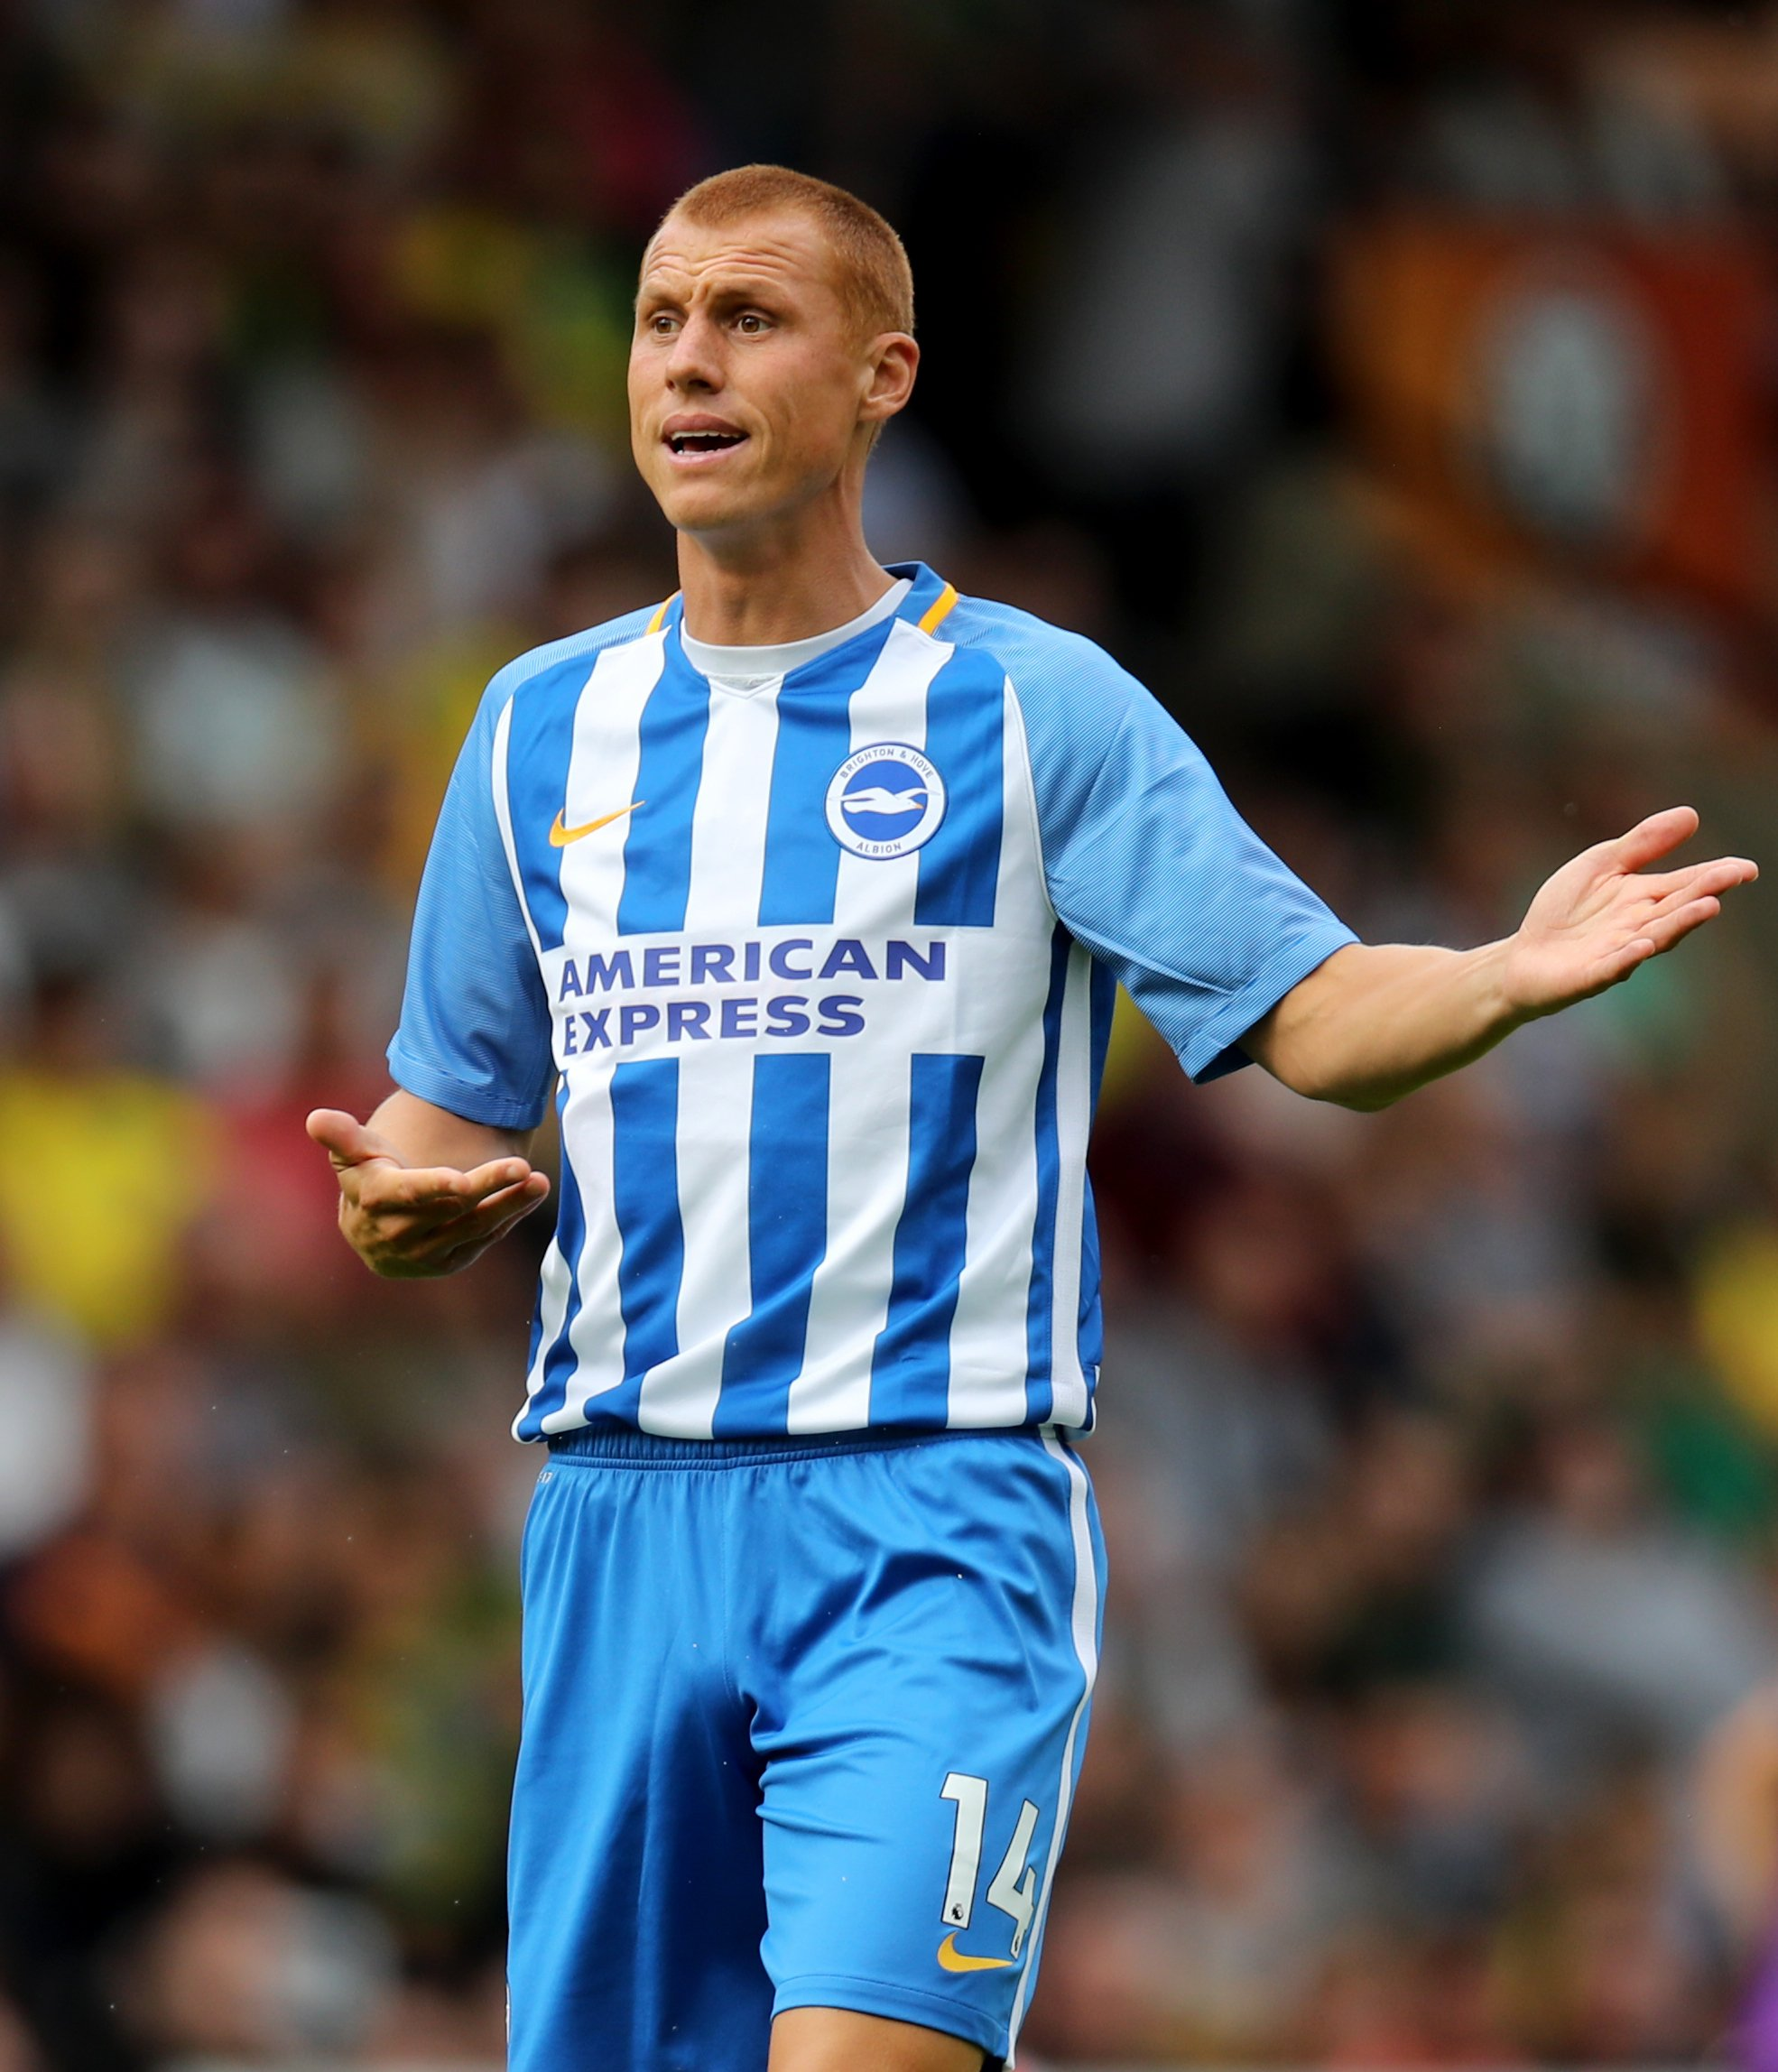 Steve Sidwell suffered a fractured ankle in training